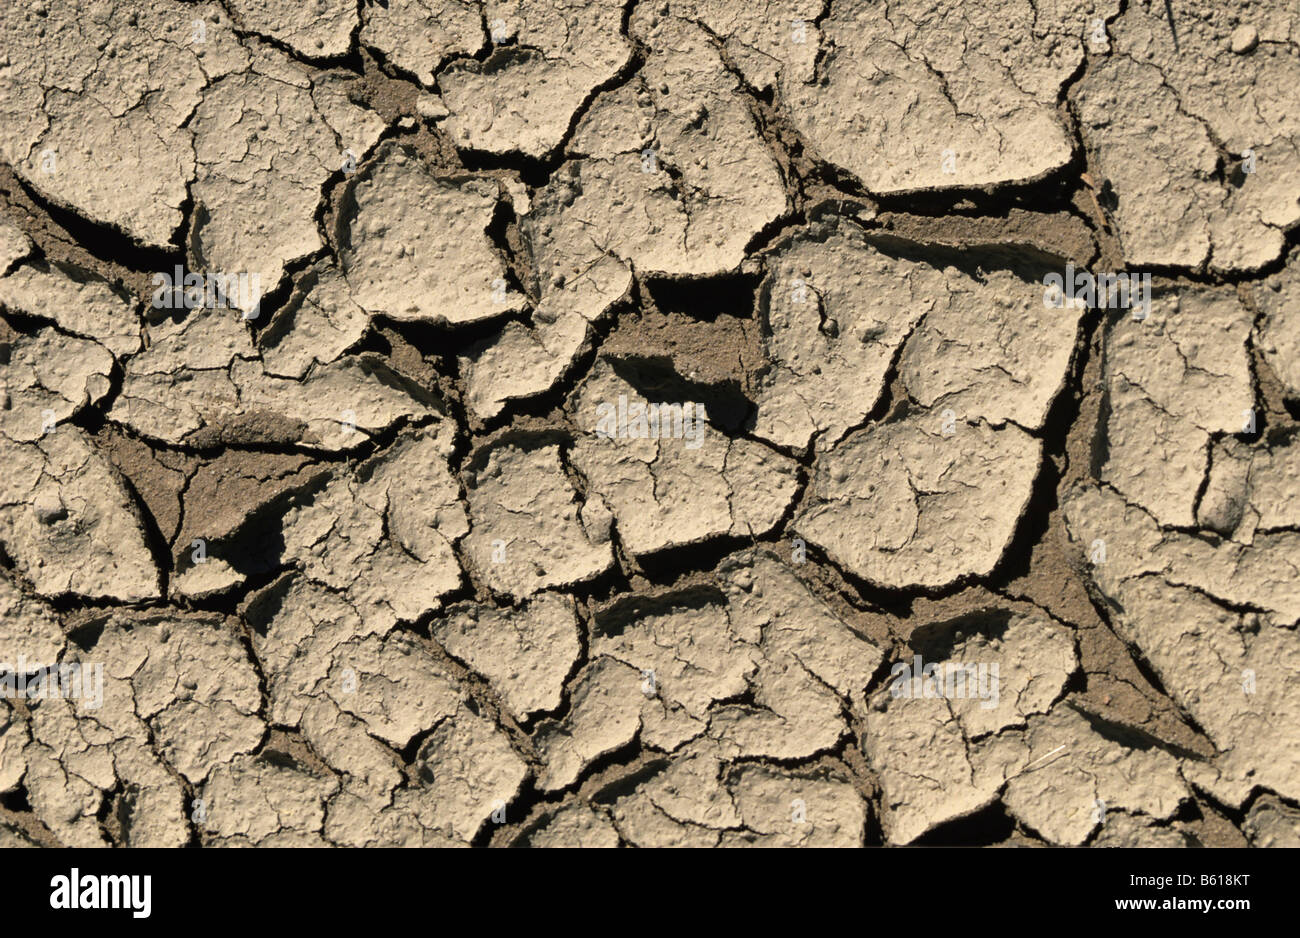 Dried out soil caused by drought and lack of water - Stock Image